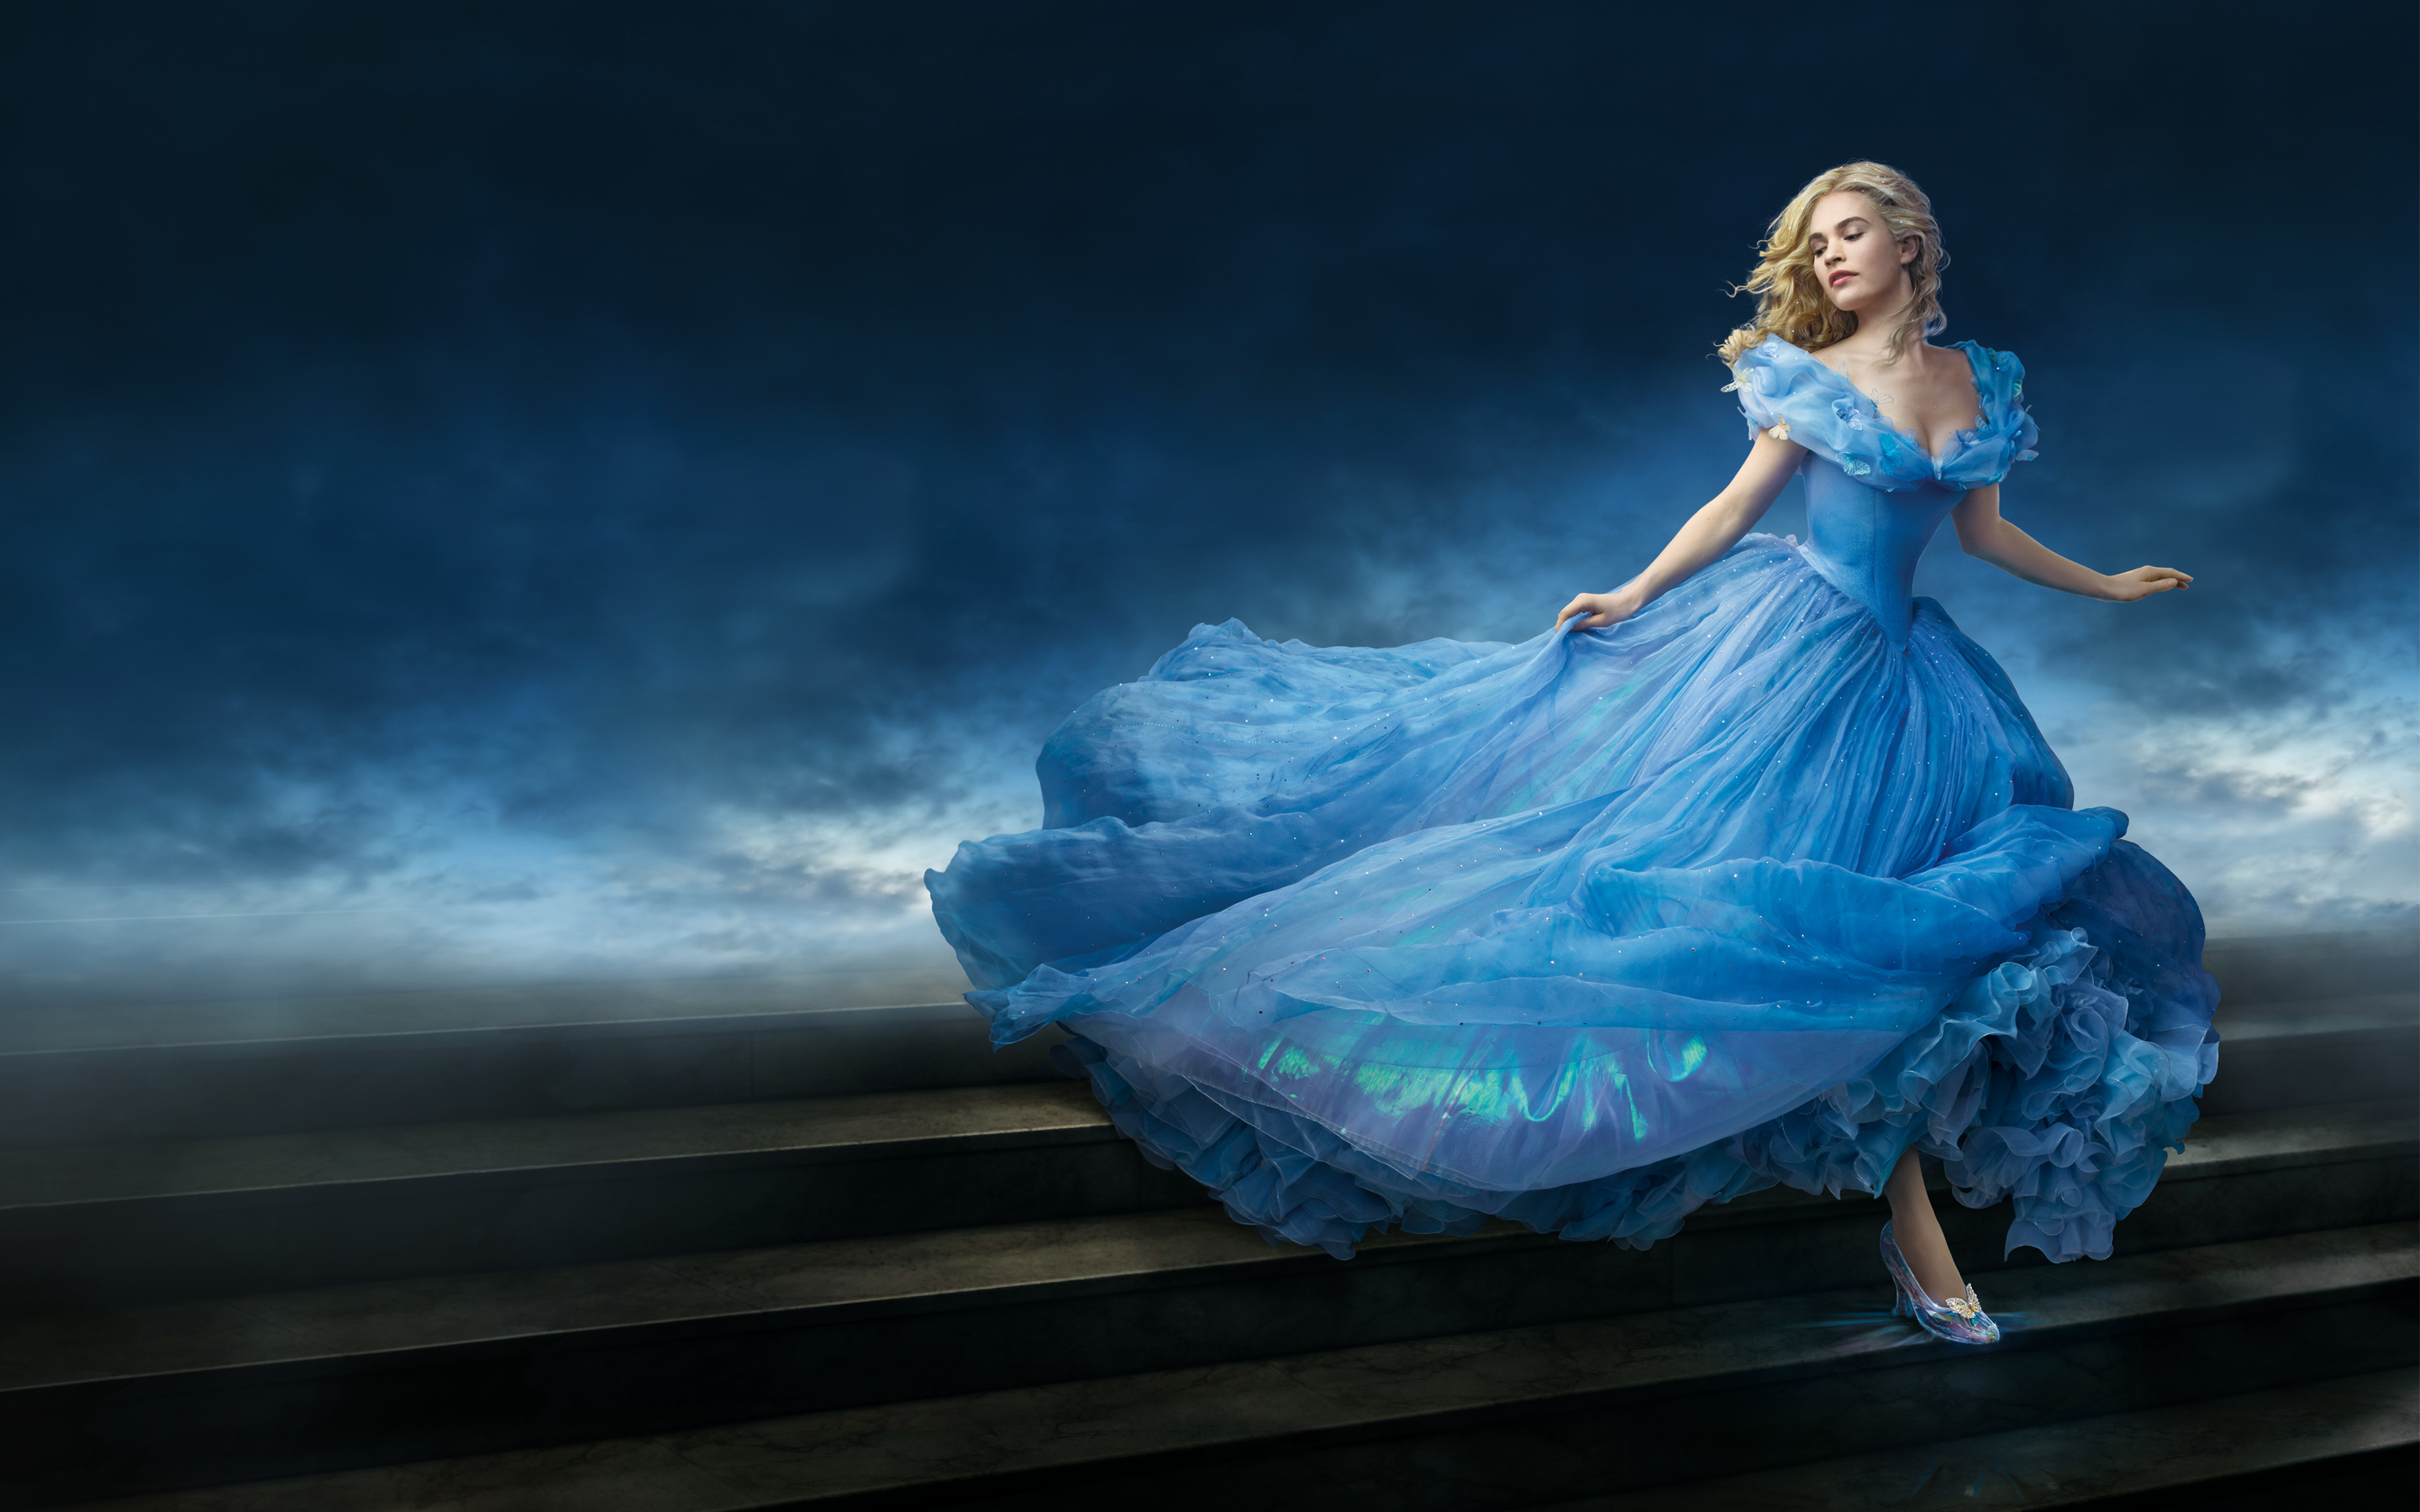 HQ Cinderella Wallpapers | File 1066.07Kb